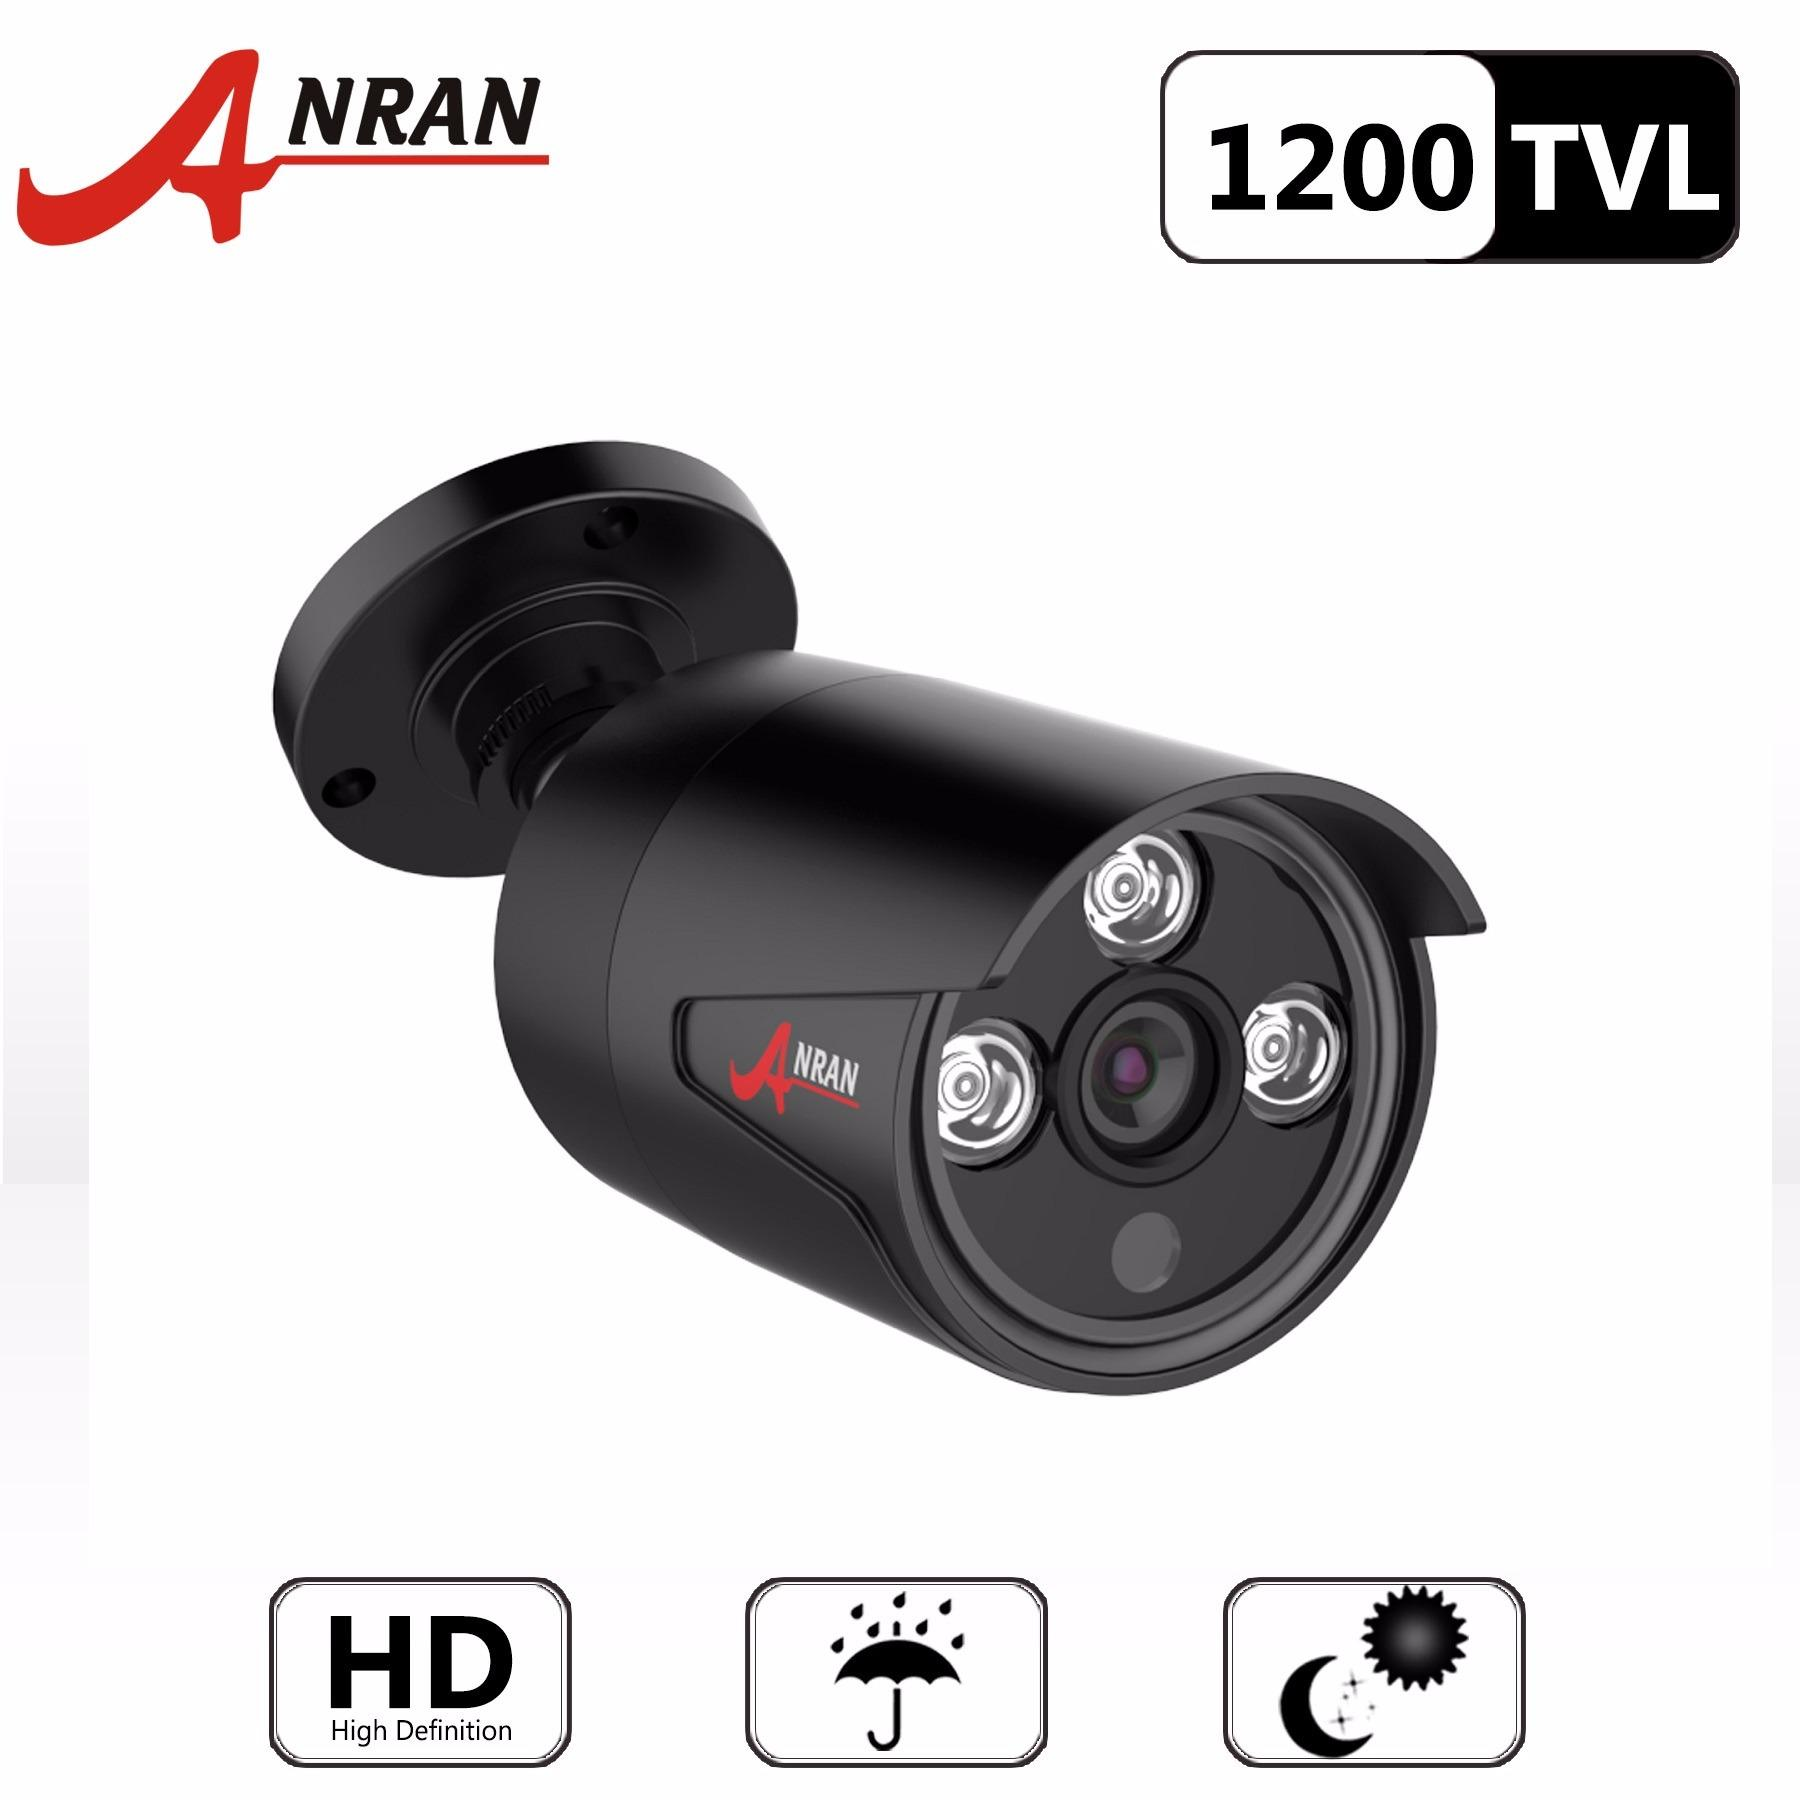 Buy Anran Hd 1200Tvl Cmos Sensor Security Waterproof Outdoor Indoor Bullet Surveillance Cctv Camera Anran Cheap